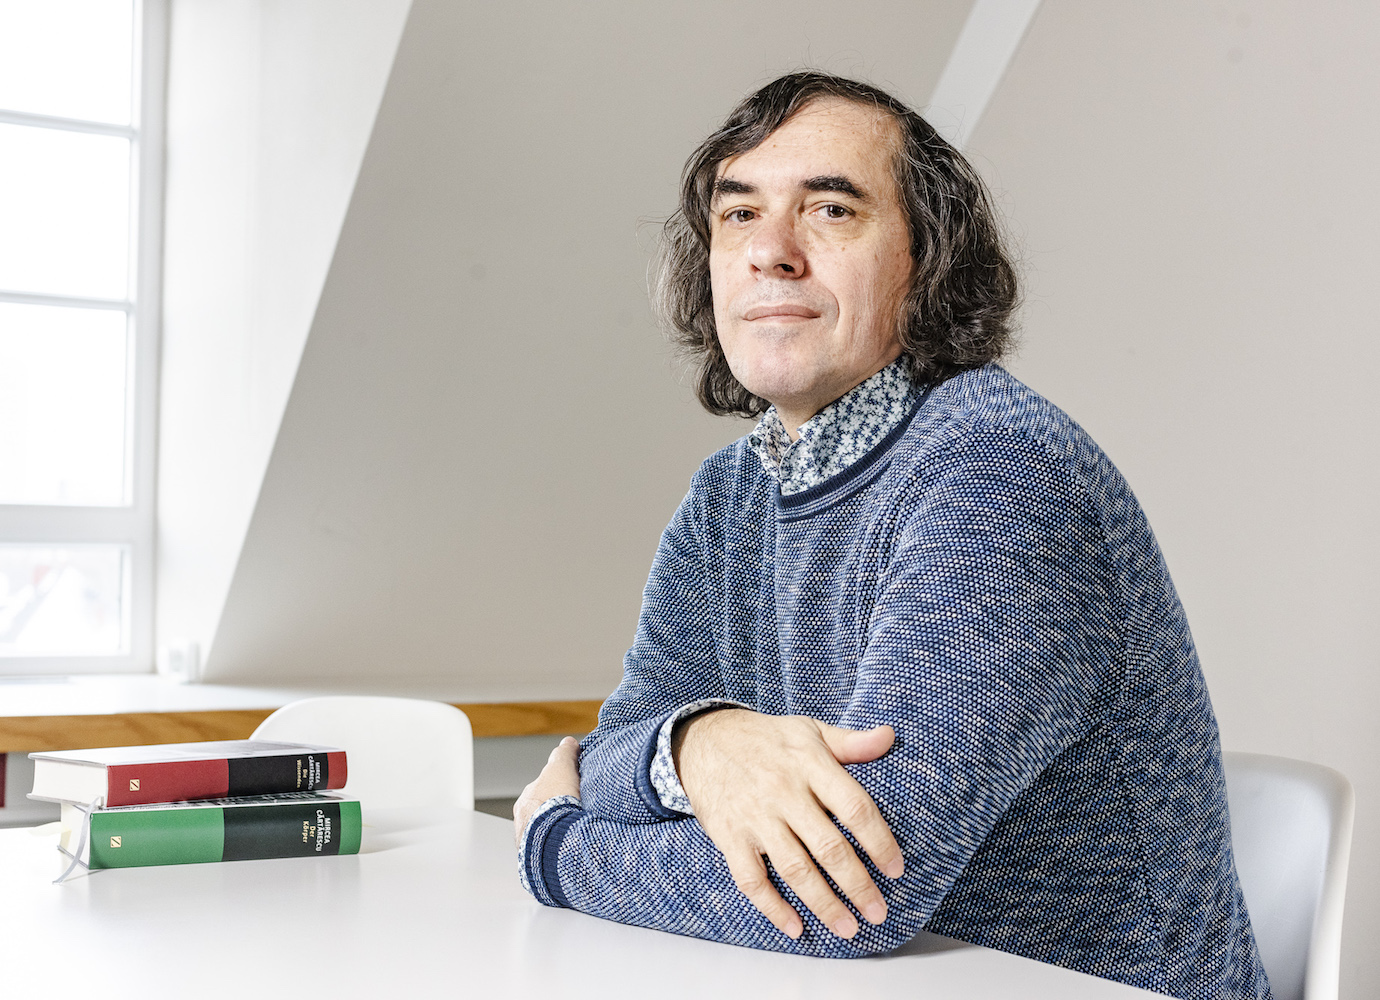 'A writer should express the human condition on every page:' Romanian literary star Mircea Cărtărescu on life, literature and success